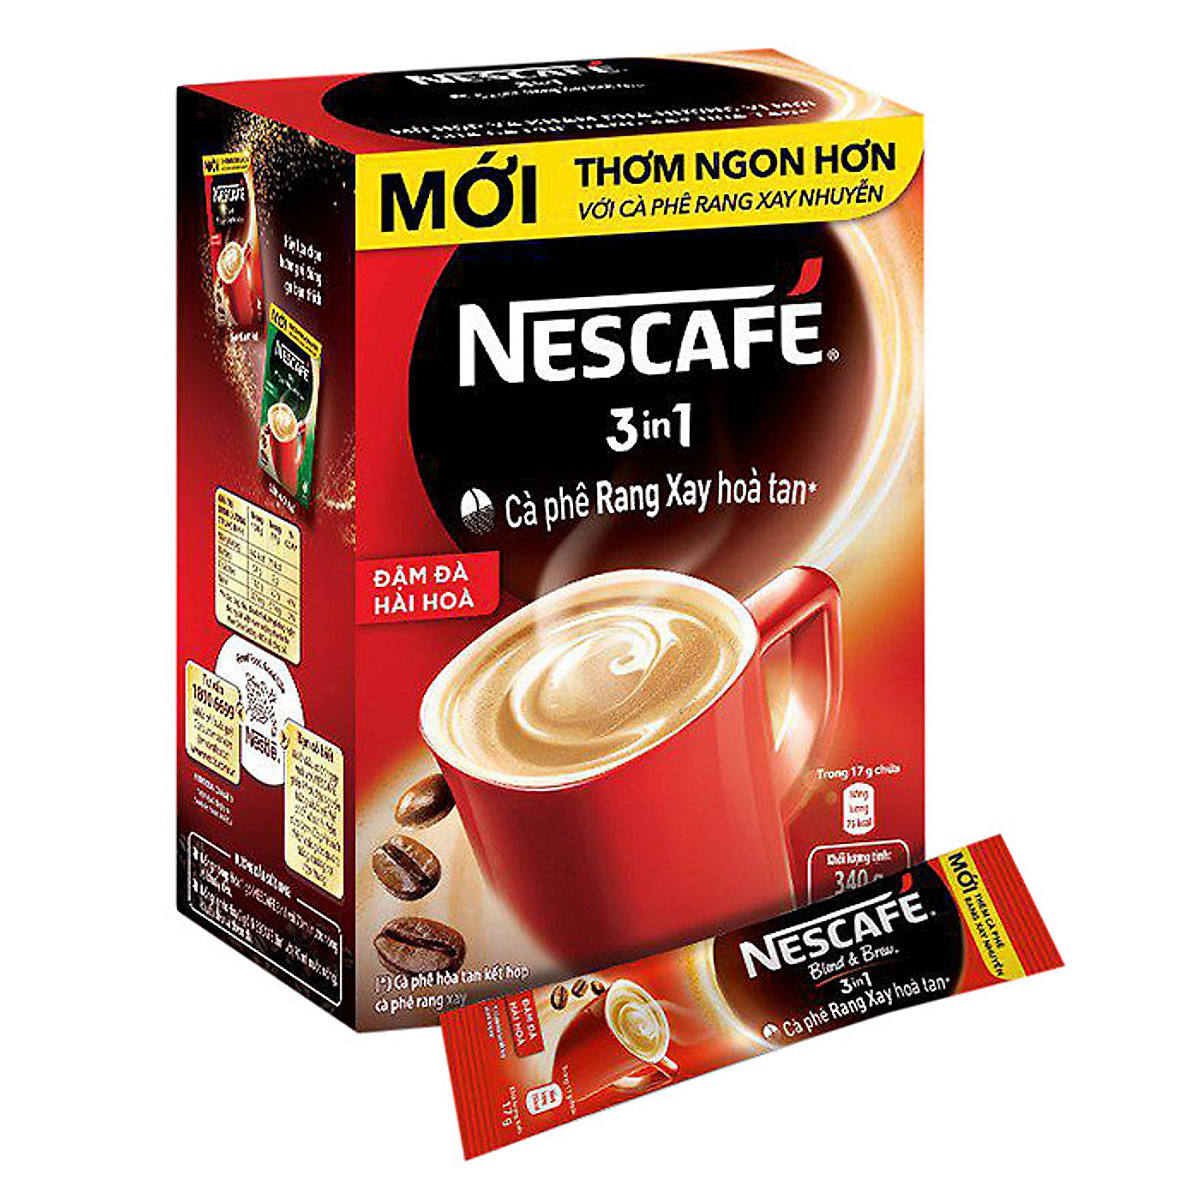 Nes Cafe 3 In 1 Harmonious Rich Instant Roasted Coffee 340g Pack 20 - Coffee+ Roaster Bag